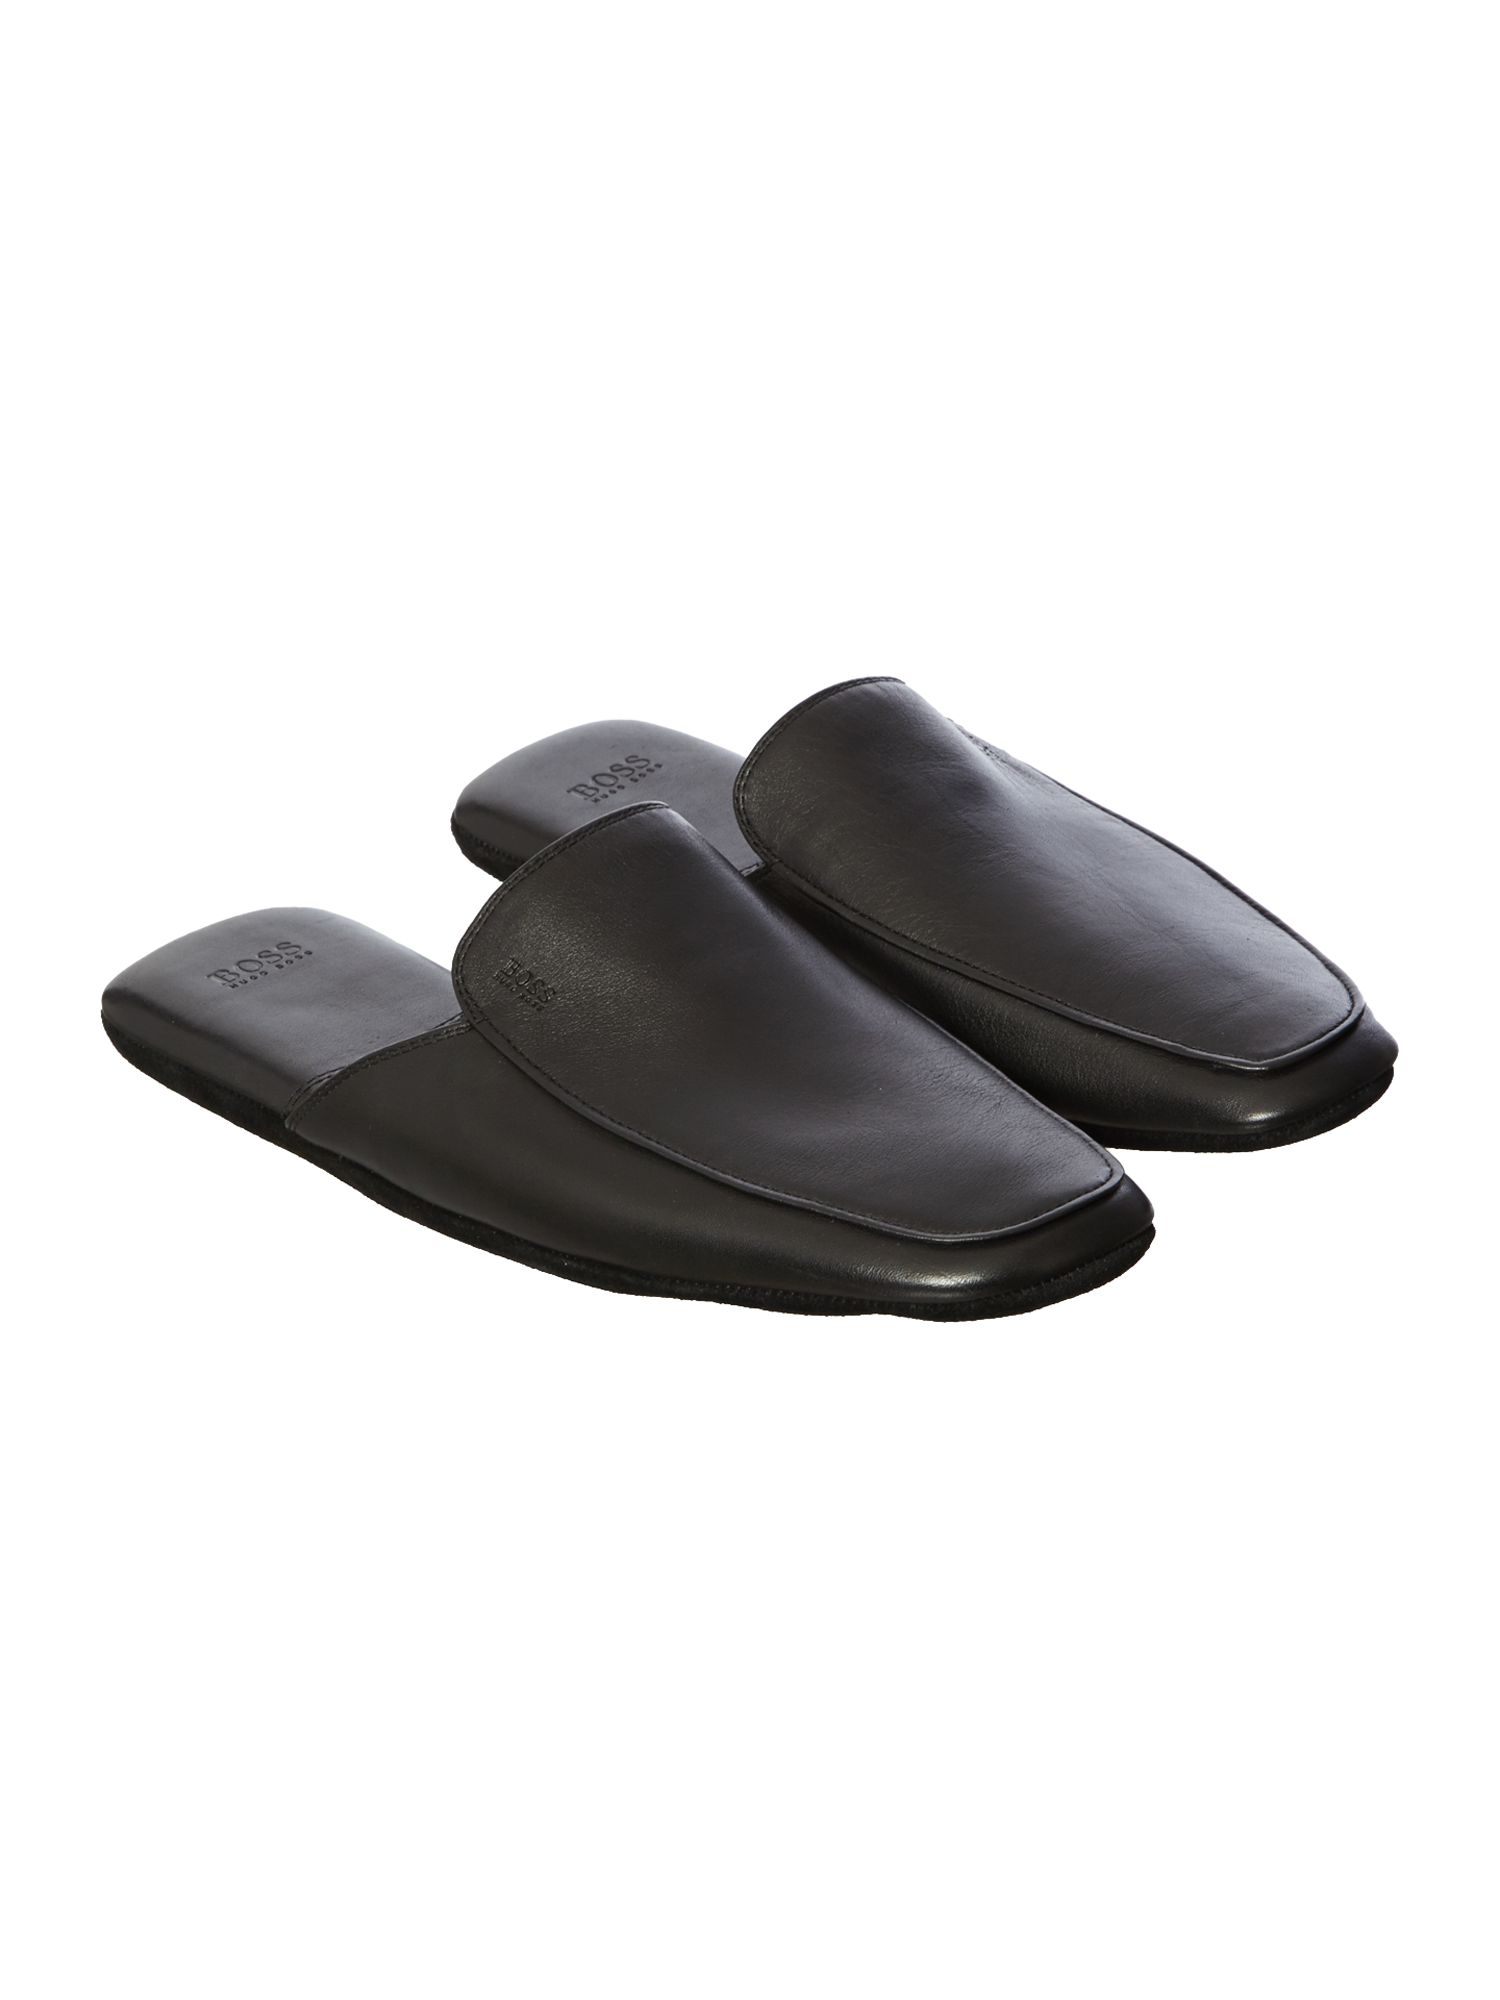 Homio leather mule slipper